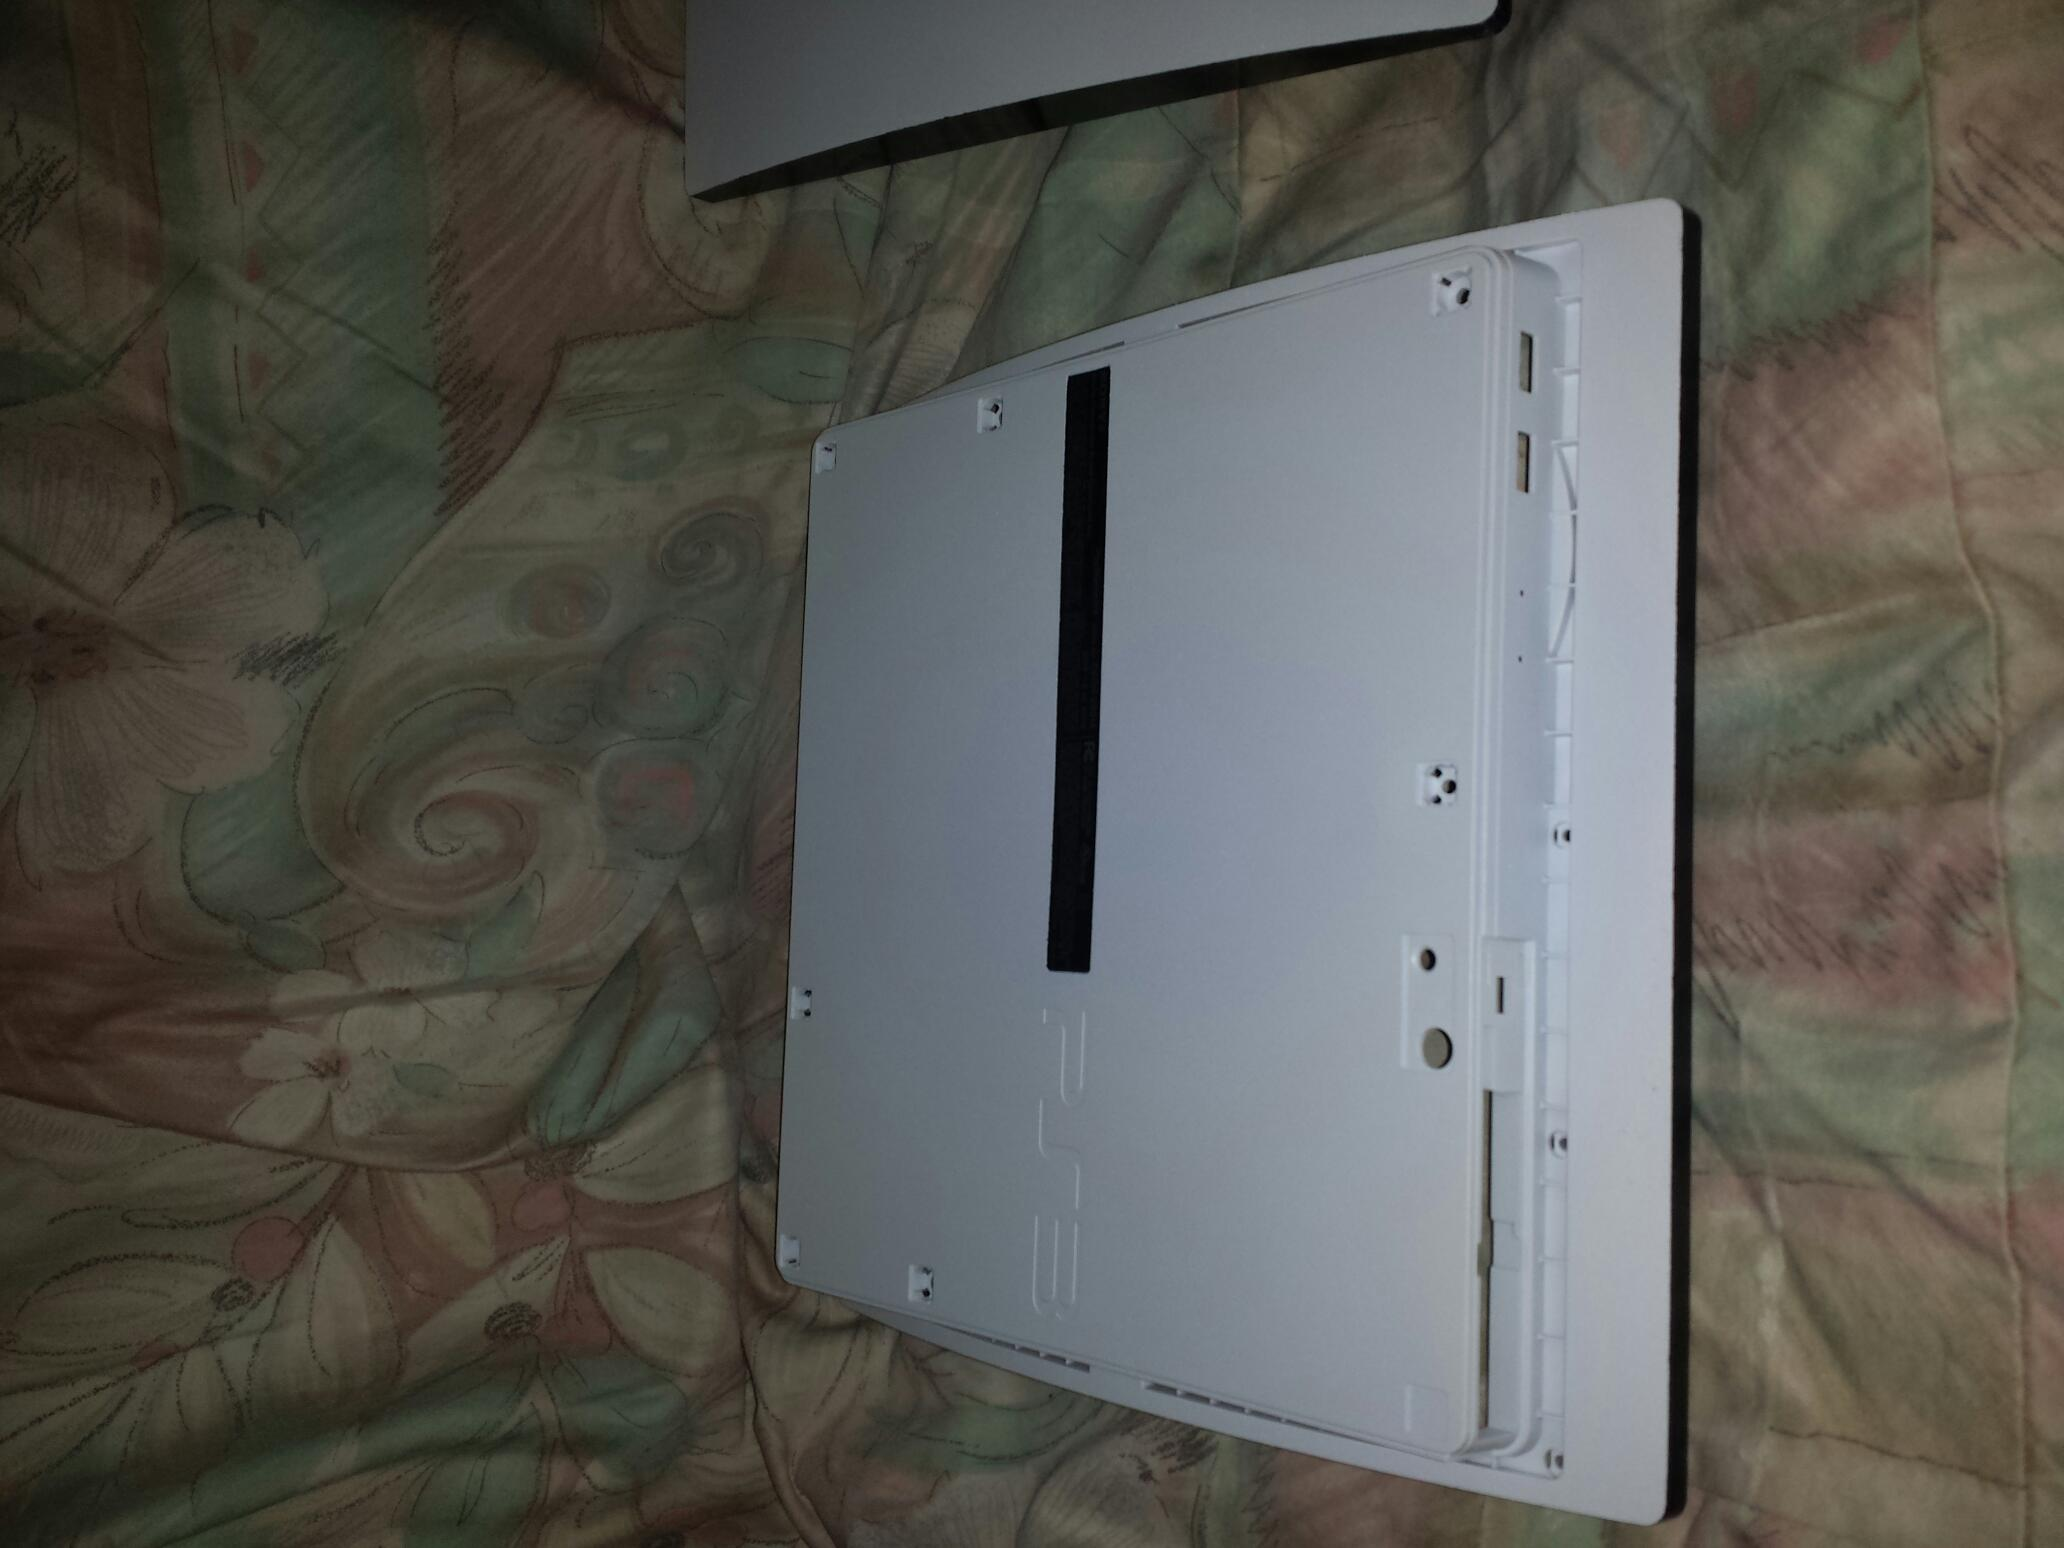 Play games off hard drive no more disc